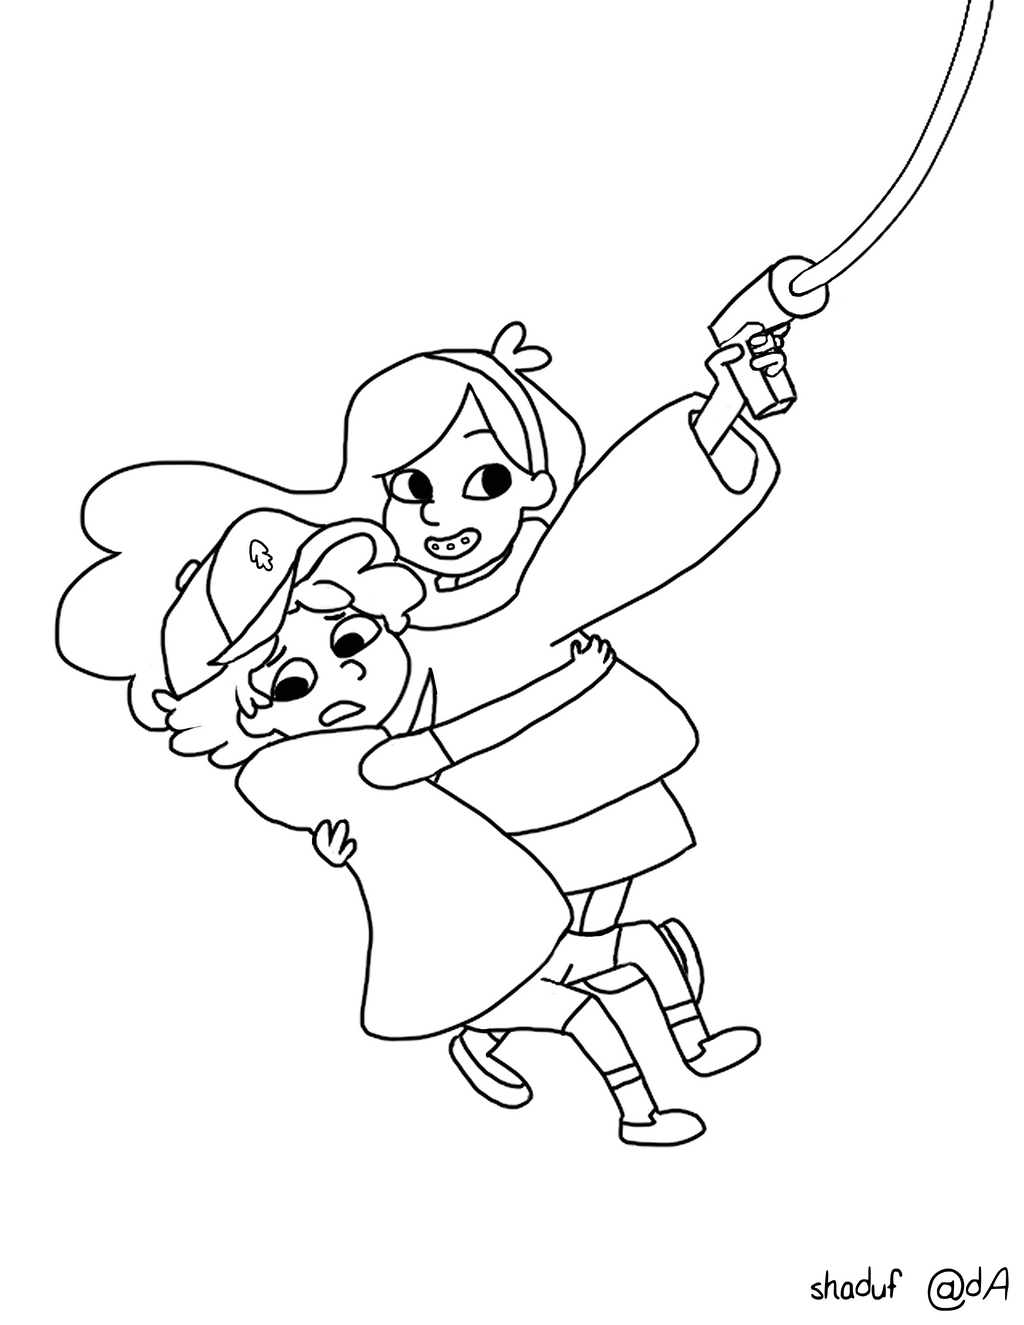 Gravity Falls Coloring Page By Shaduf